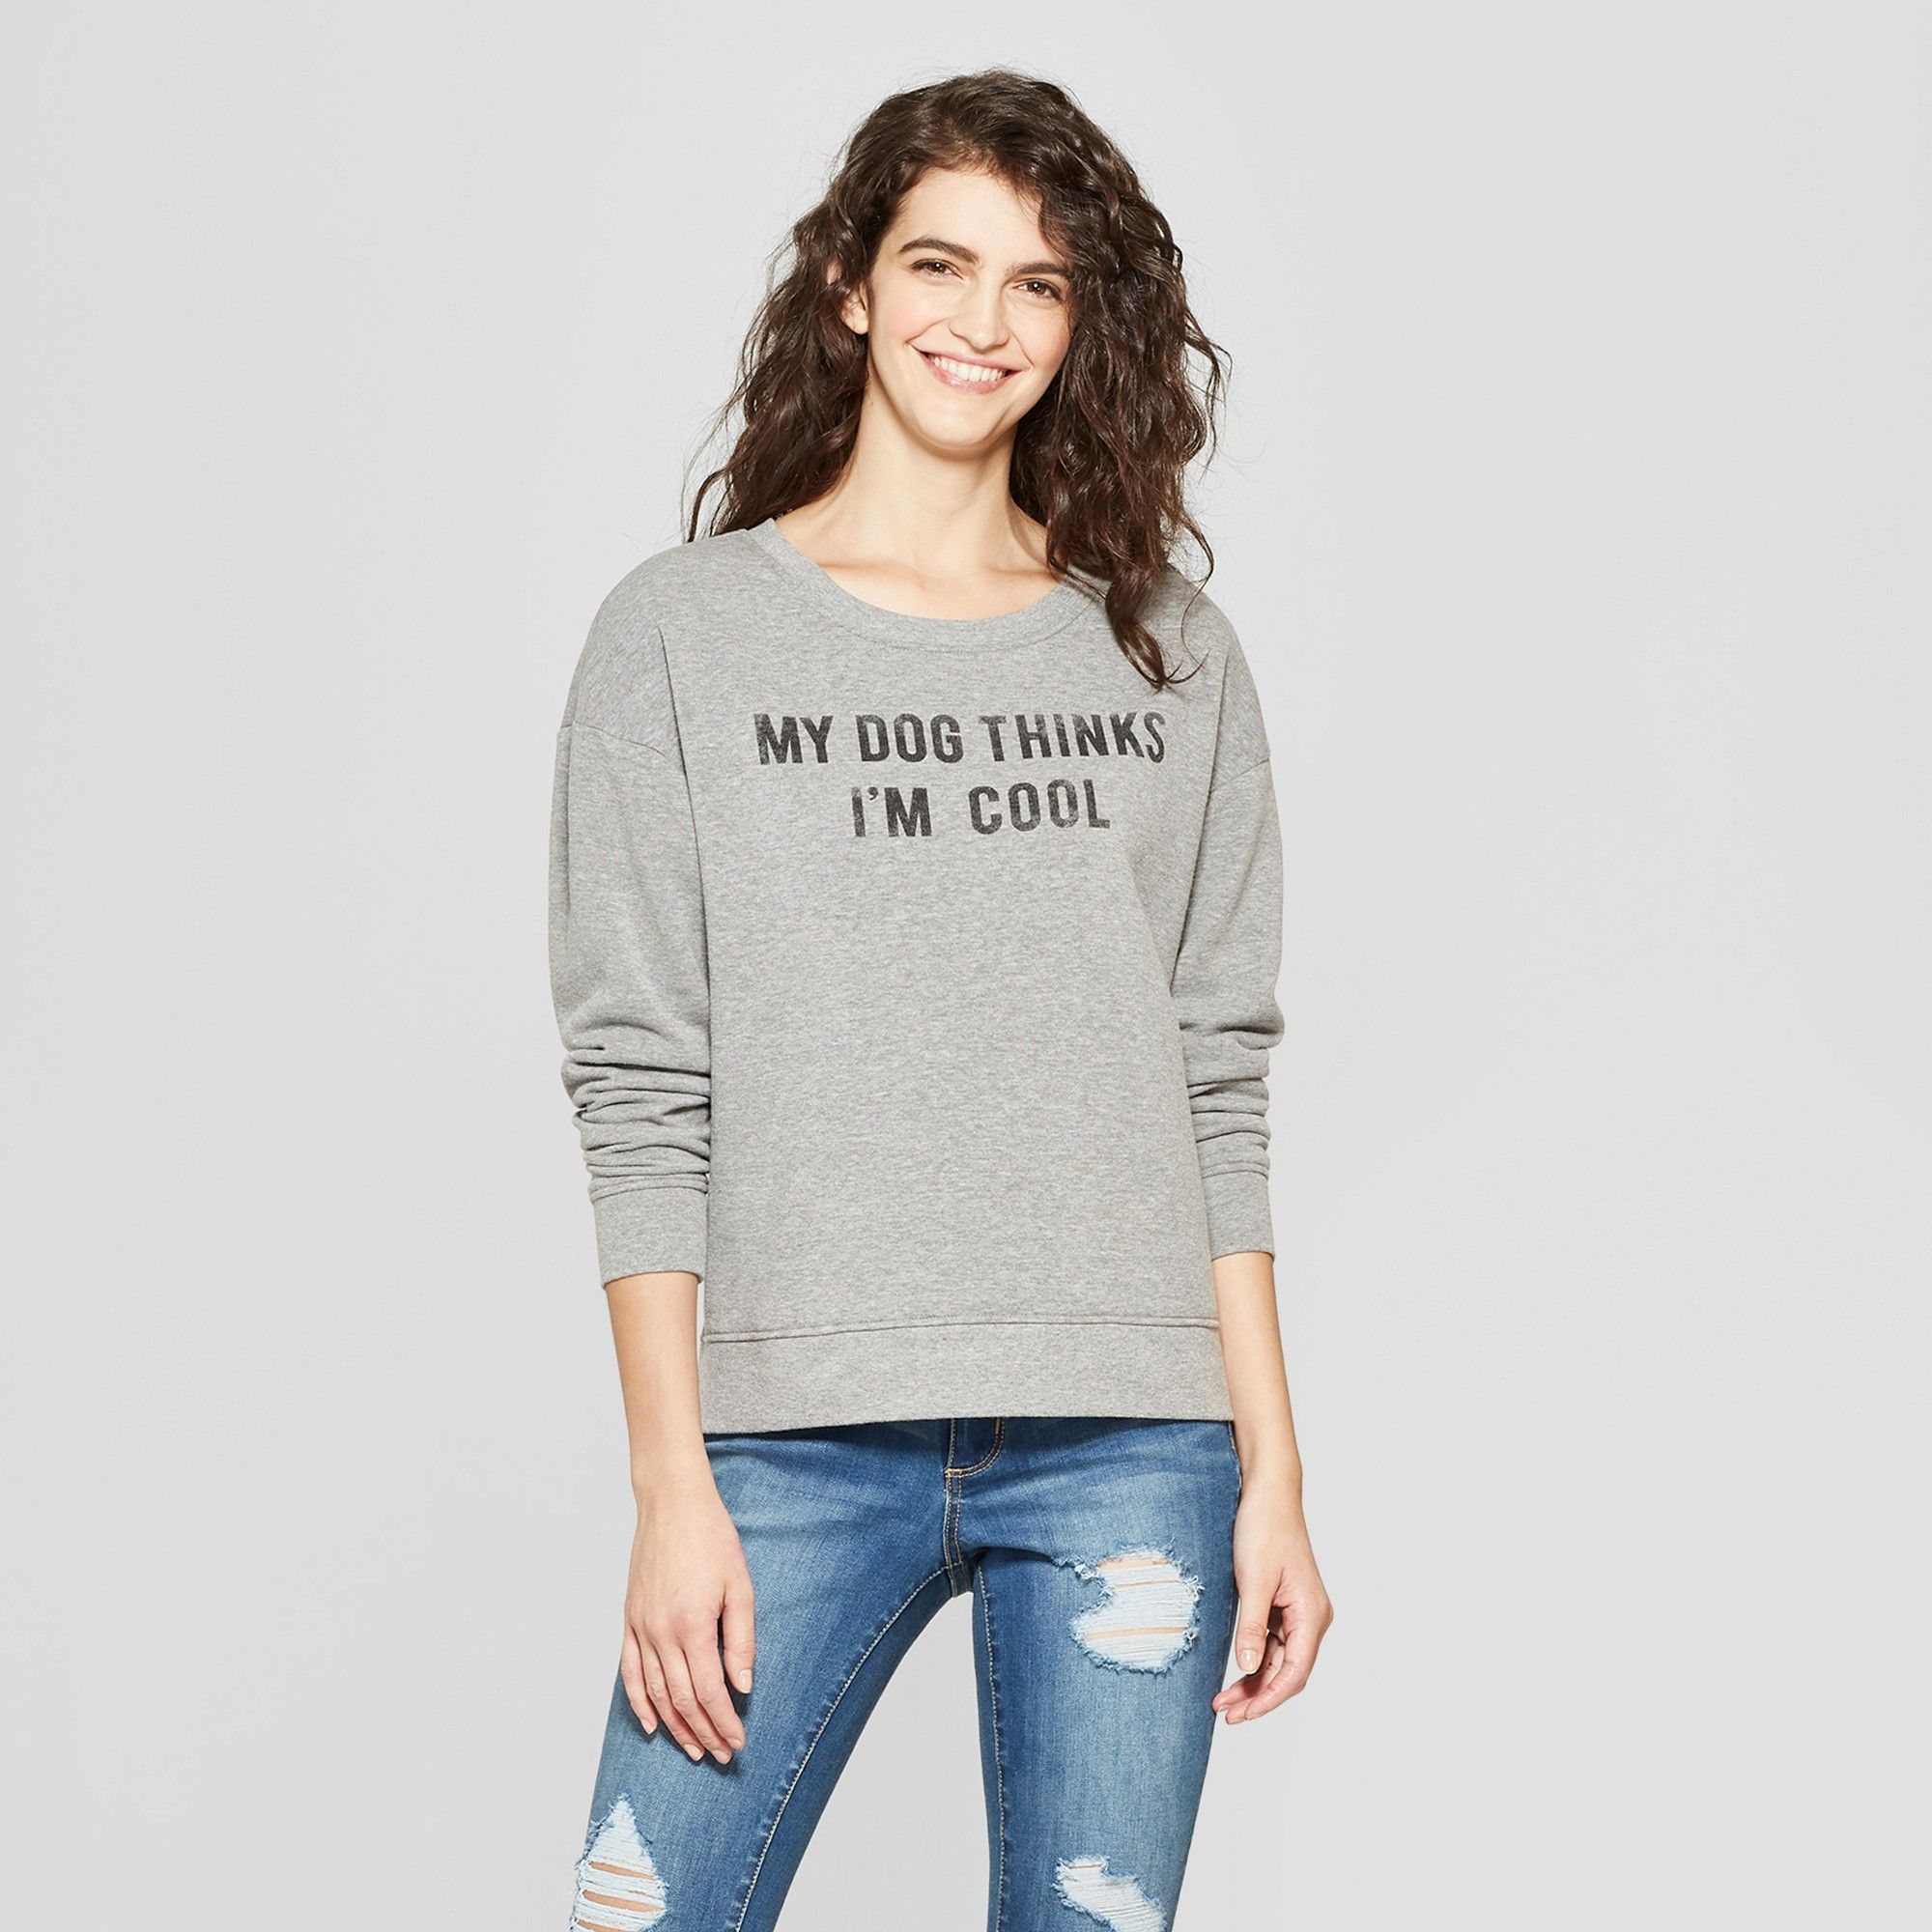 Just Here To Pet The Dogs  Funny Dog Humor Cute Gray Women/'s Jr Fit T-Shirt